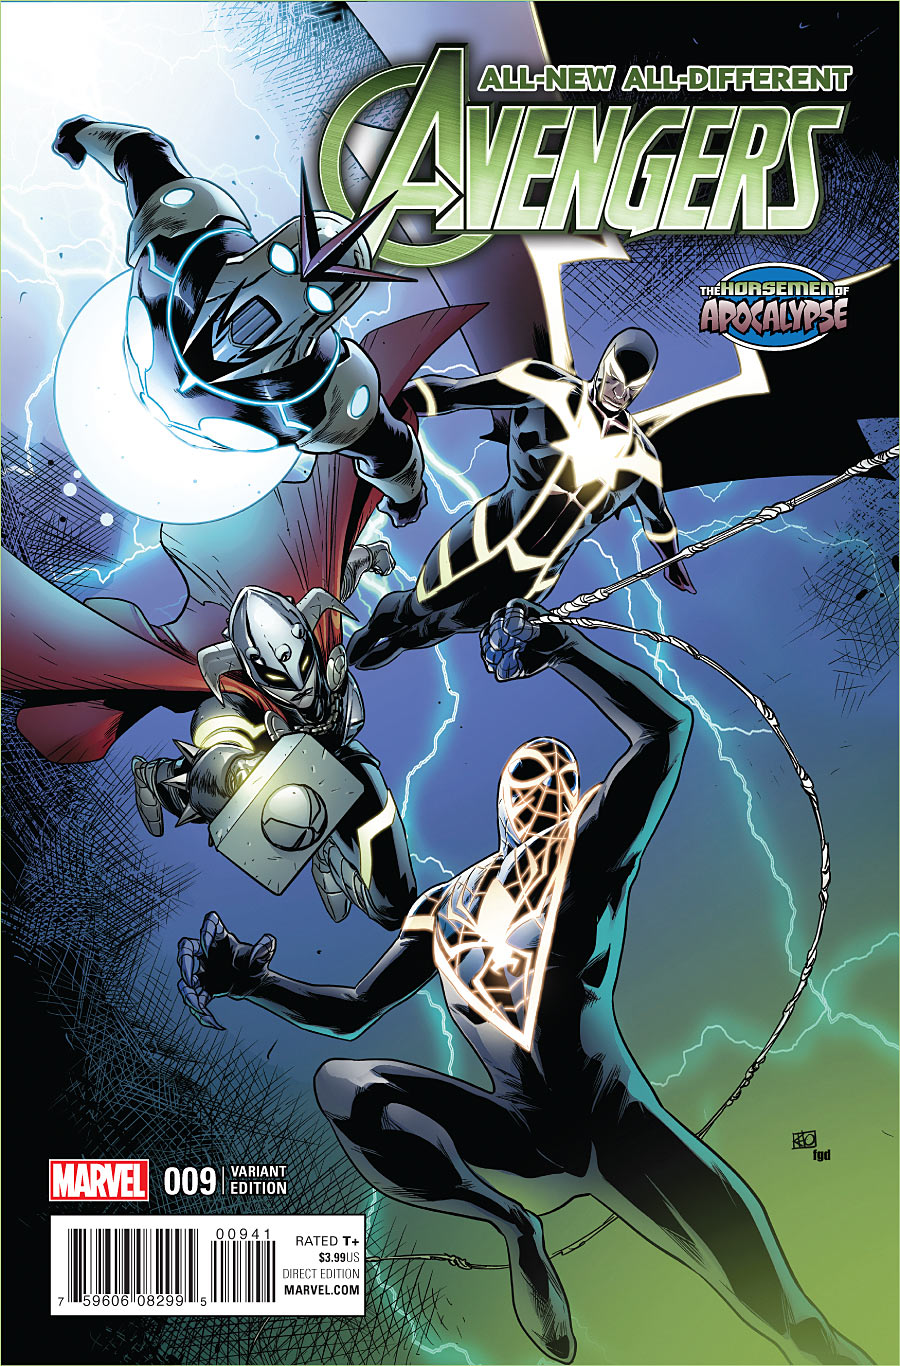 All-New, All-Different Avengers Vol 1 9 Age of Apocalypse Variant.jpg